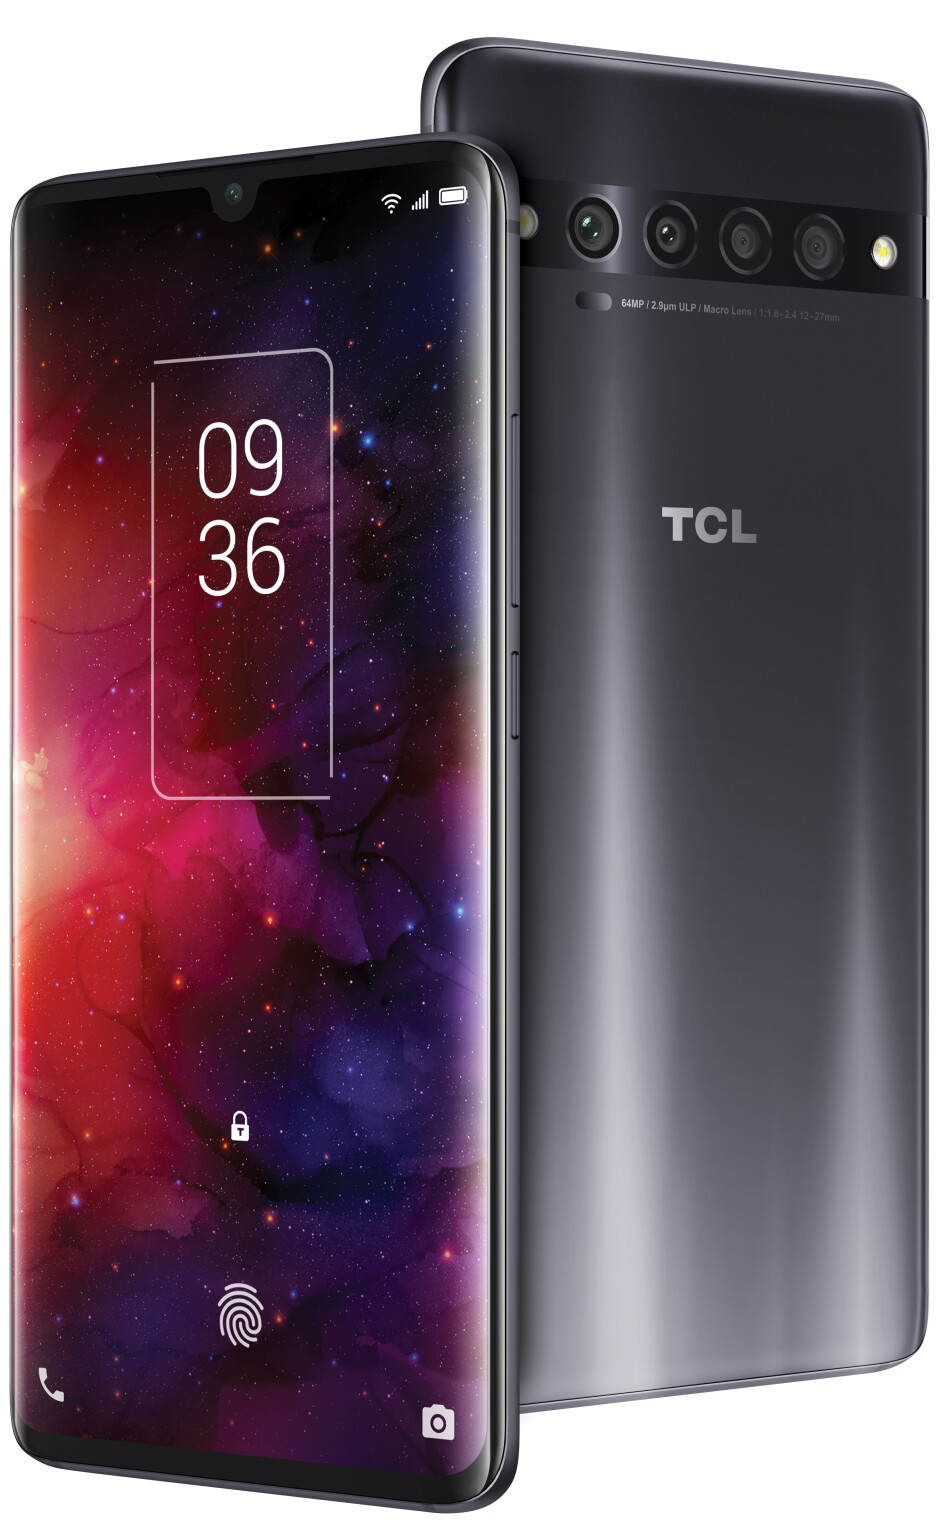 TCL 10 Pro - TCL's new phones are very affordable and are coming to the US very soon